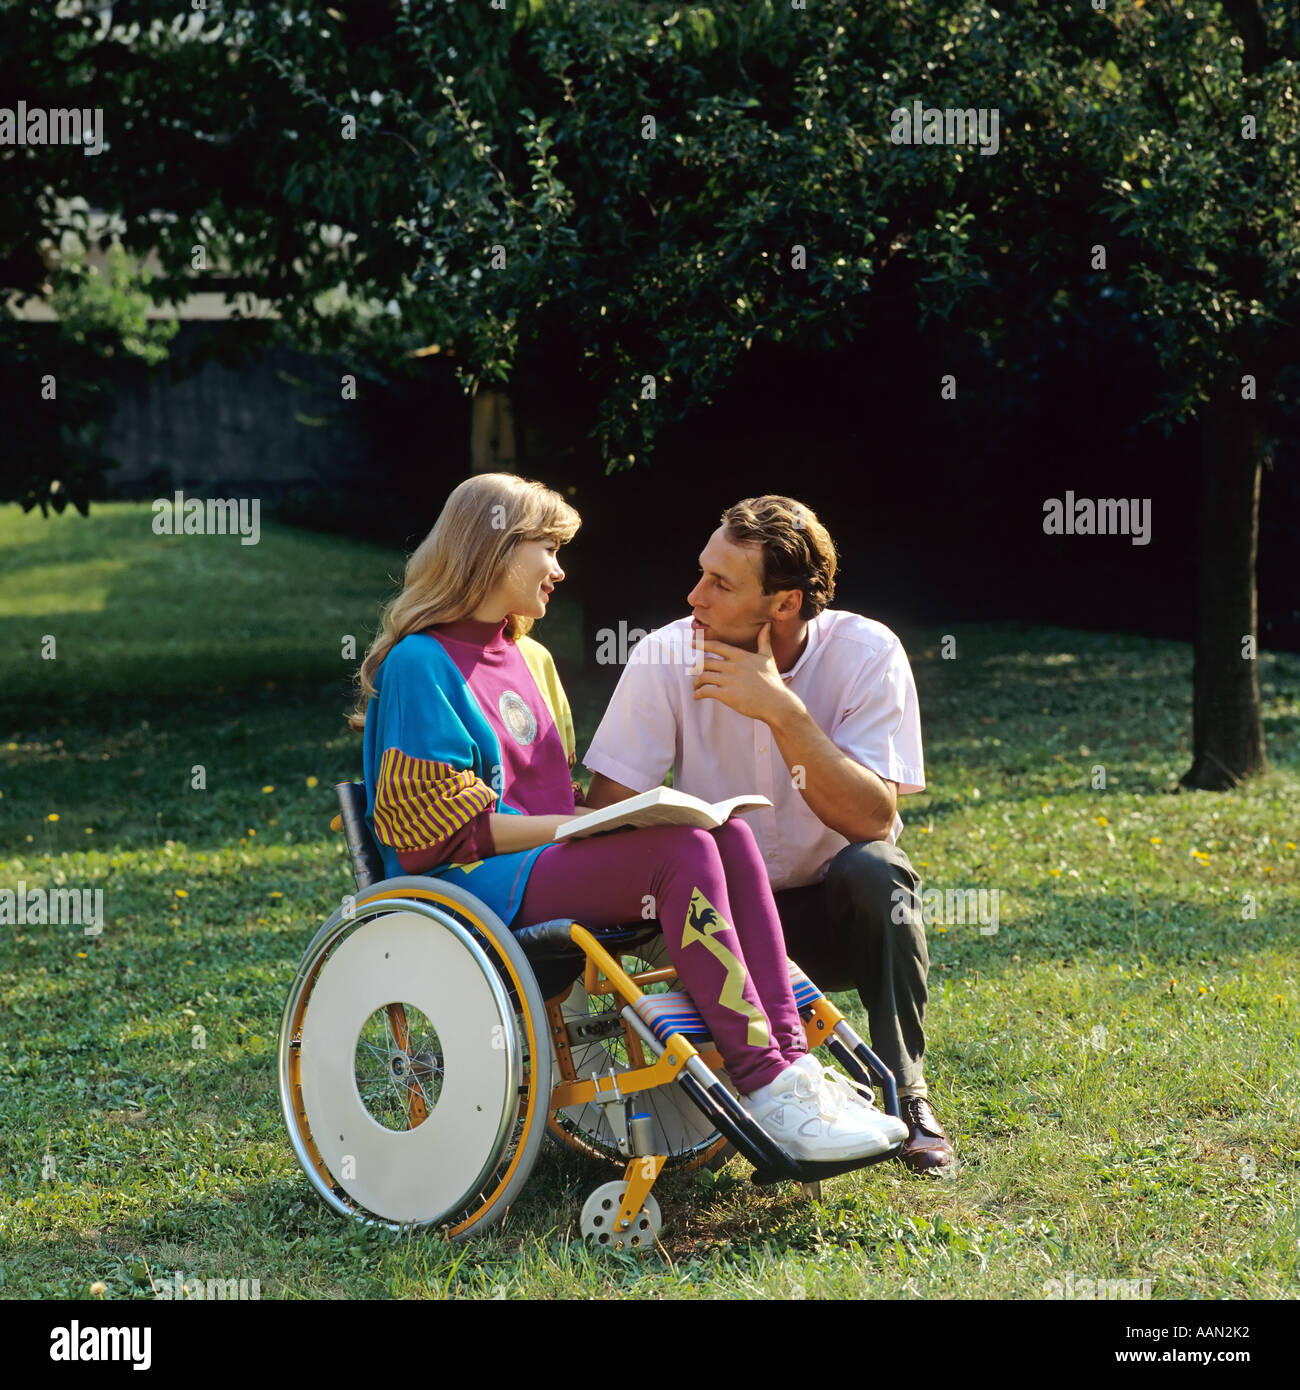 Disabled woman in wheelchair and man in garden - Stock Image